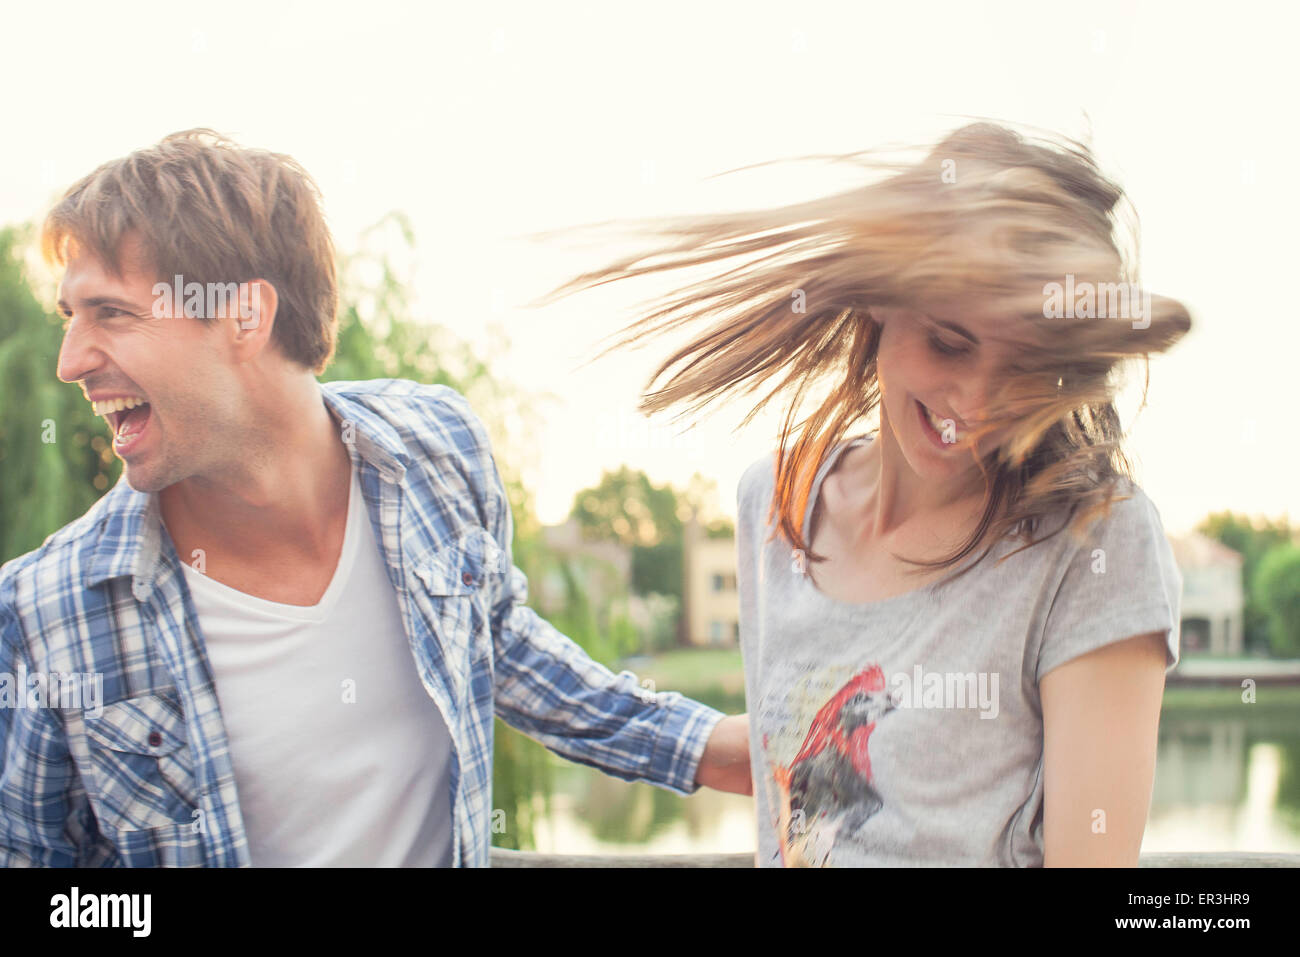 Friends partying outdoors - Stock Image